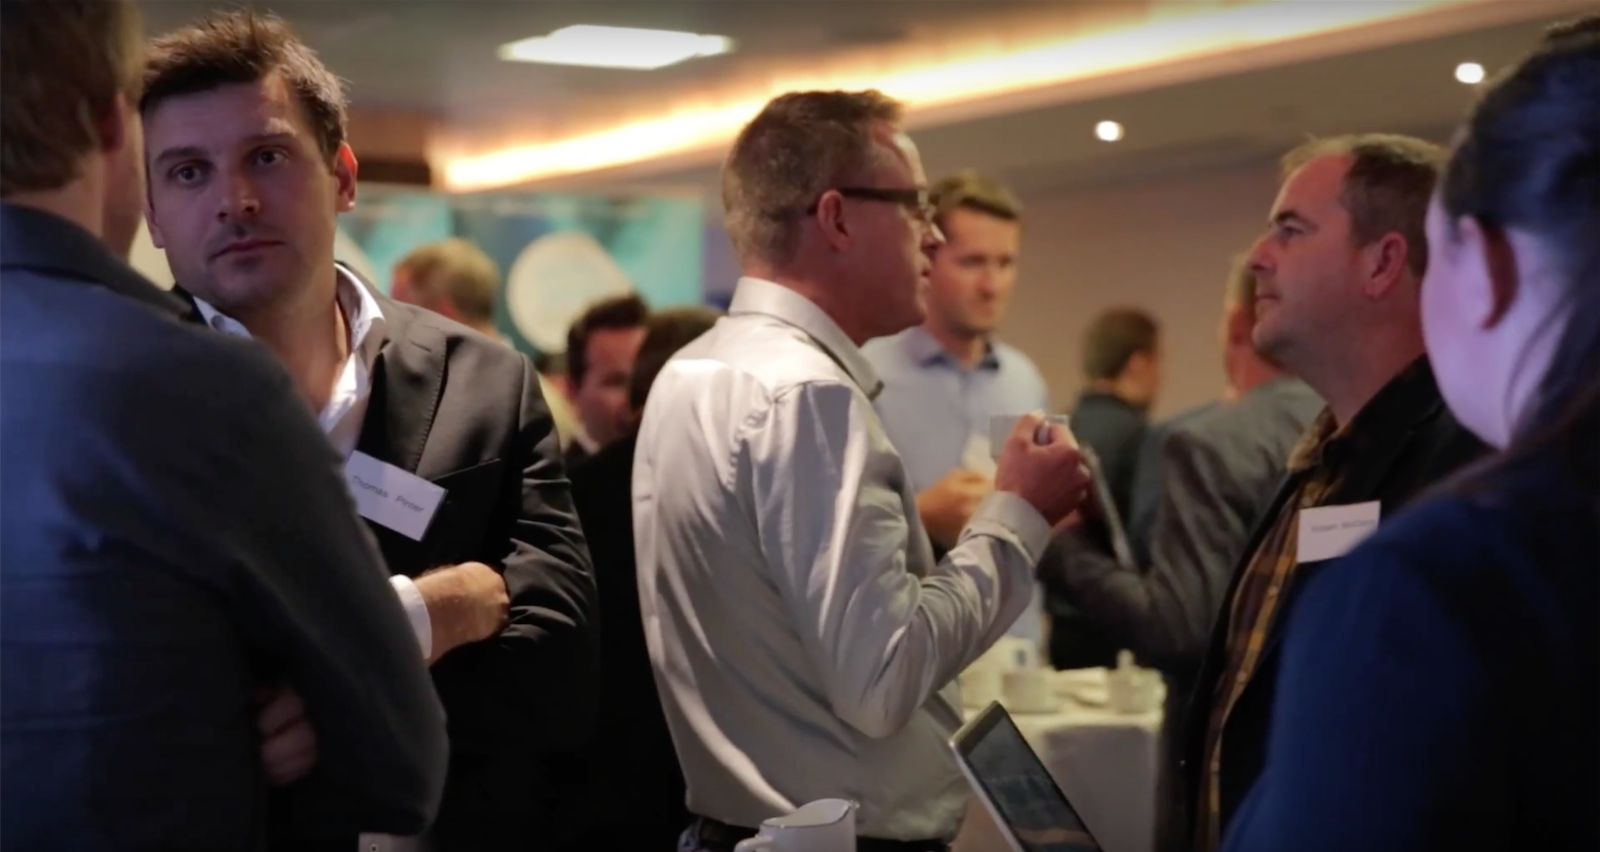 Watch Video Of GDI's First Ever Conference In London